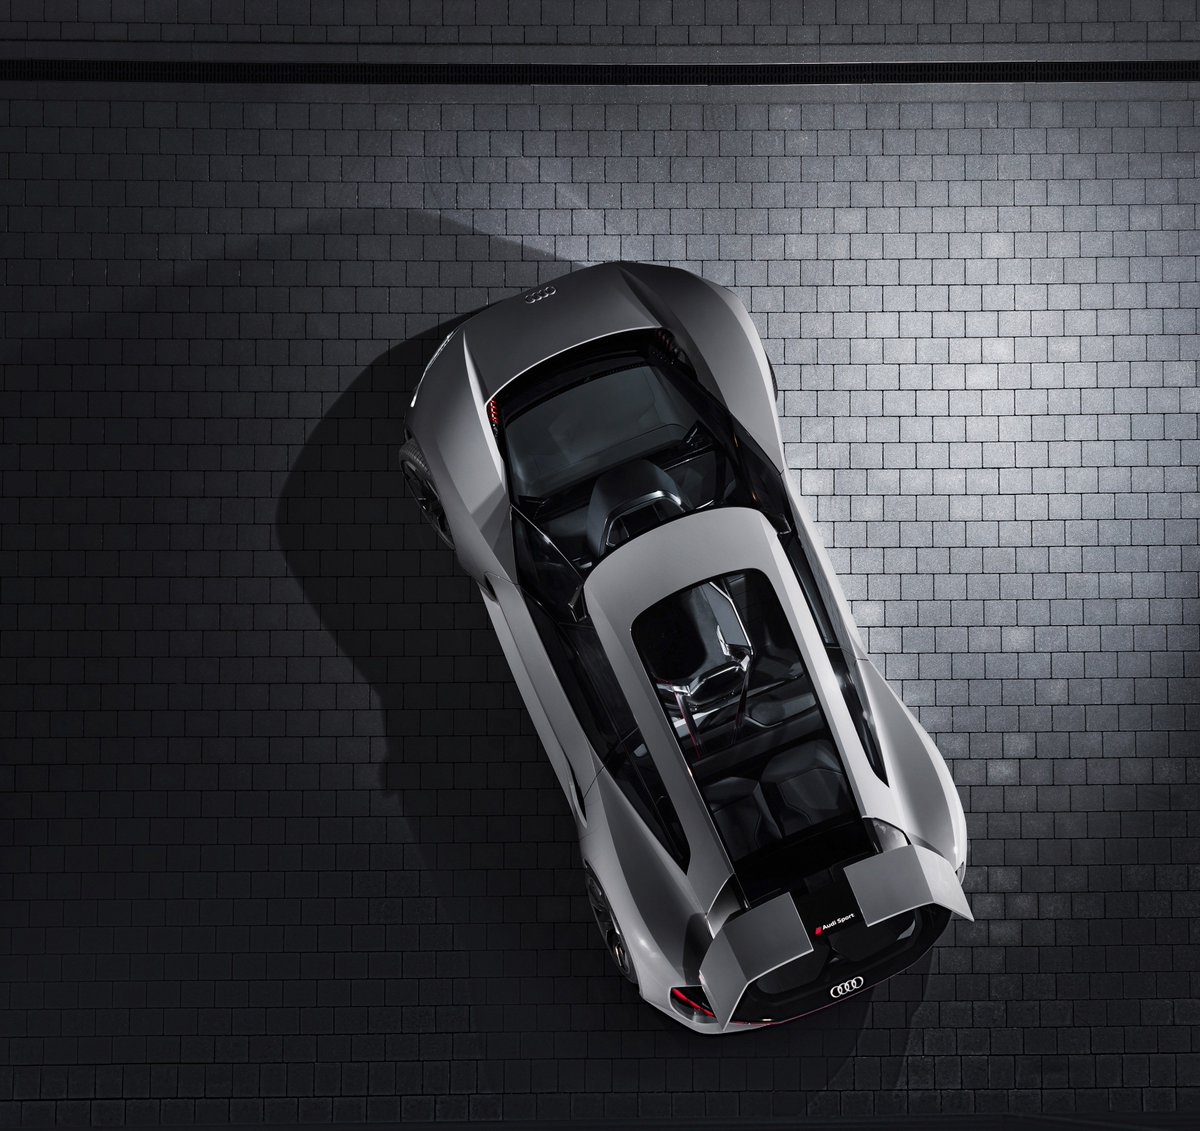 Audi On Twitter A Revolutionary Driving Machine Makes Its Debut - Monterey audi